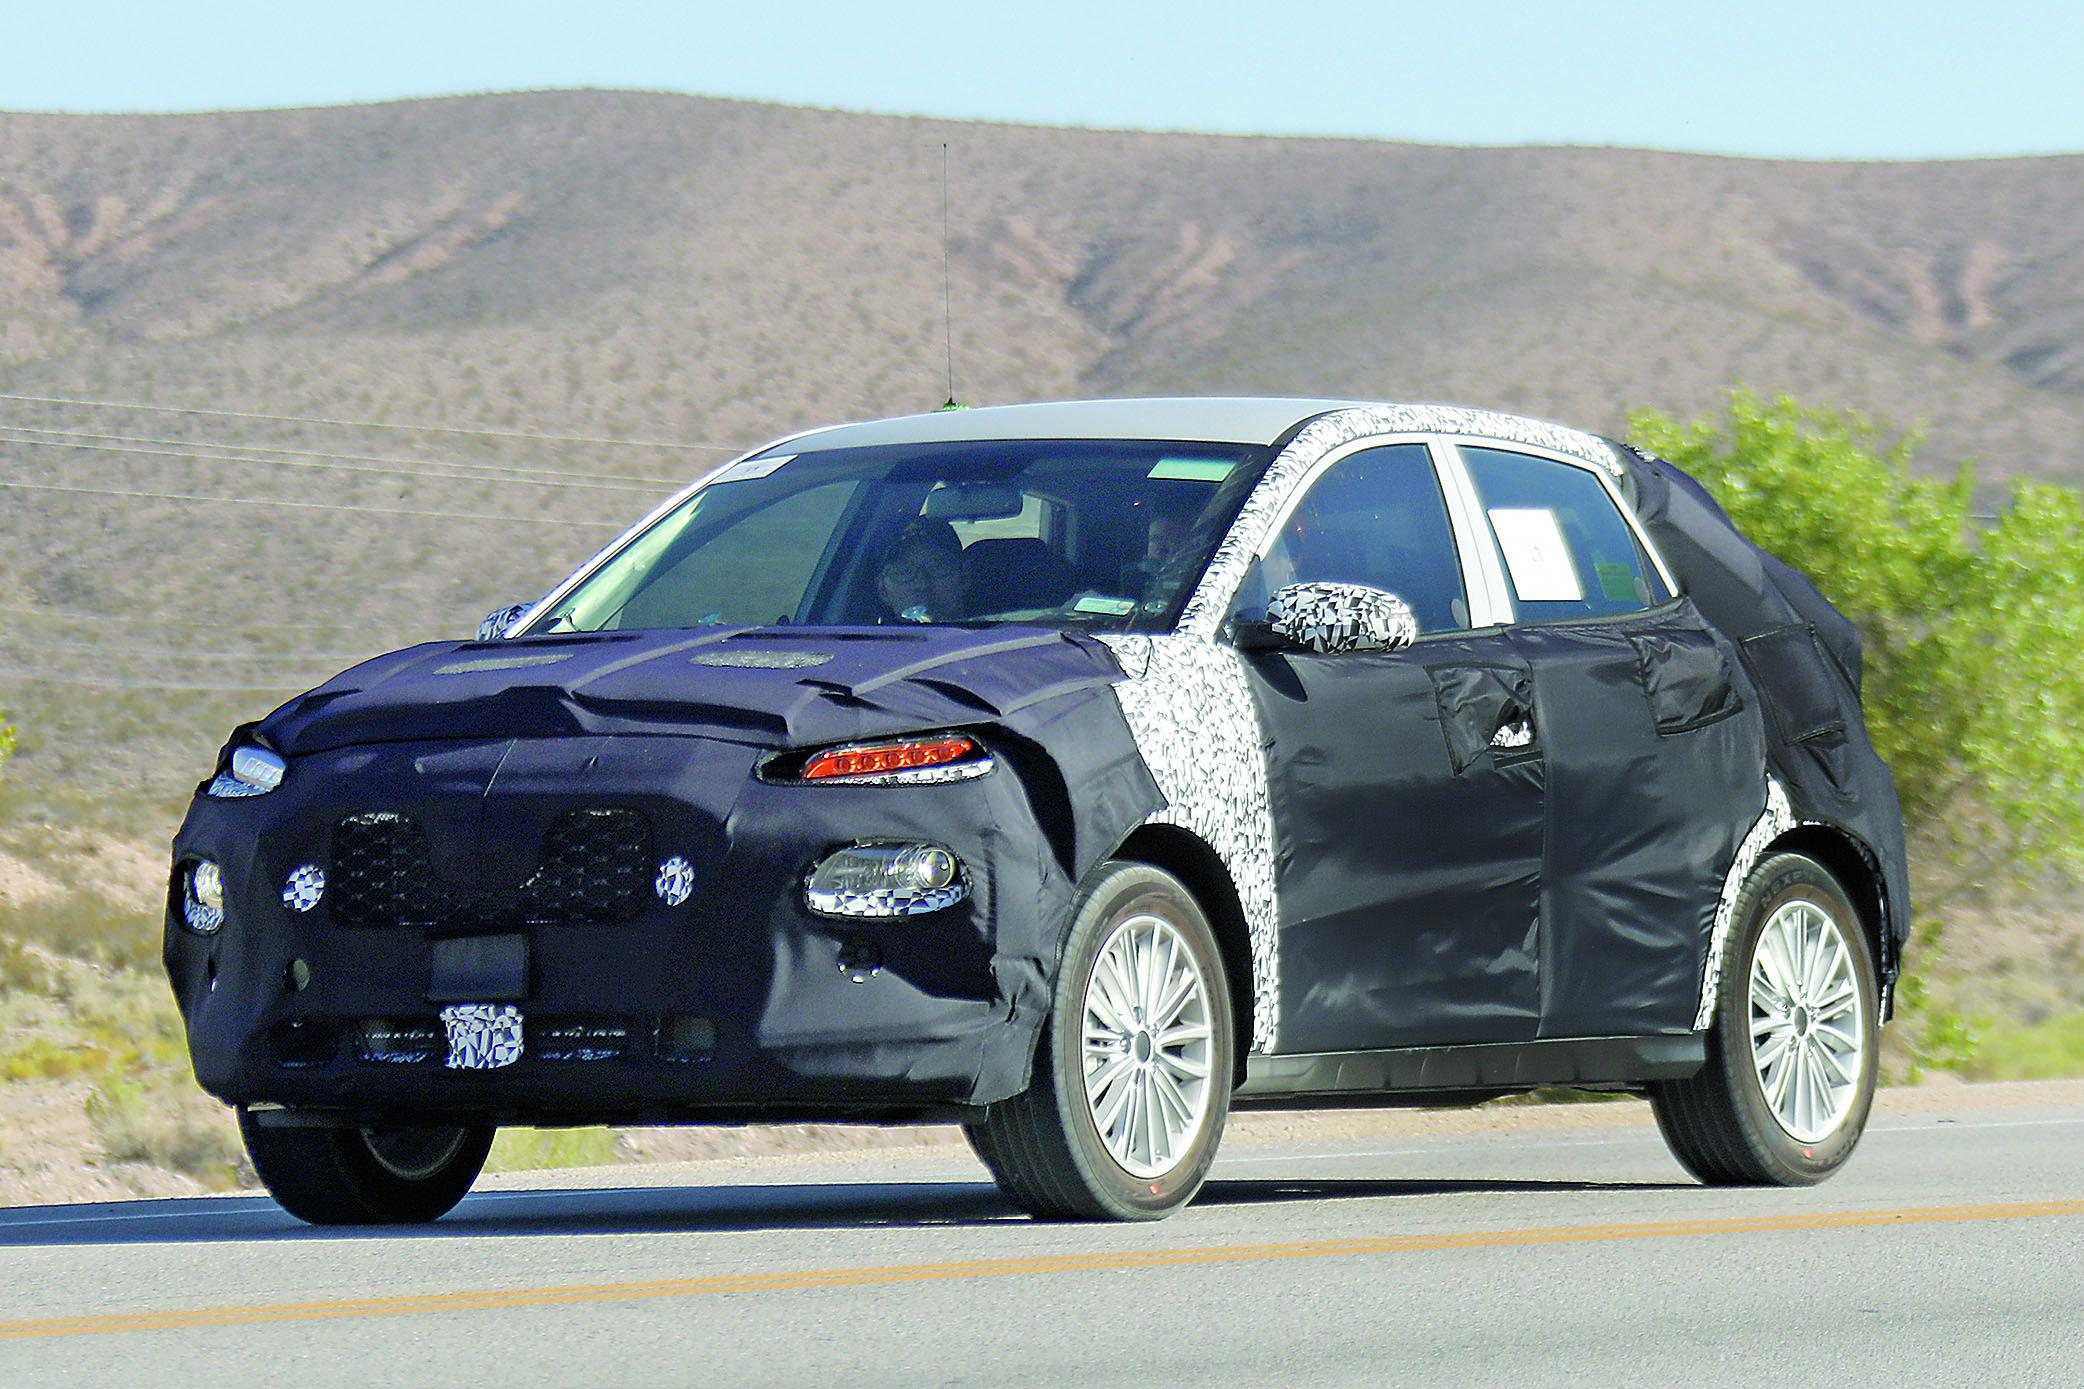 Kia's upcoming crossover shown in these spy photos will slot below the Sportage.